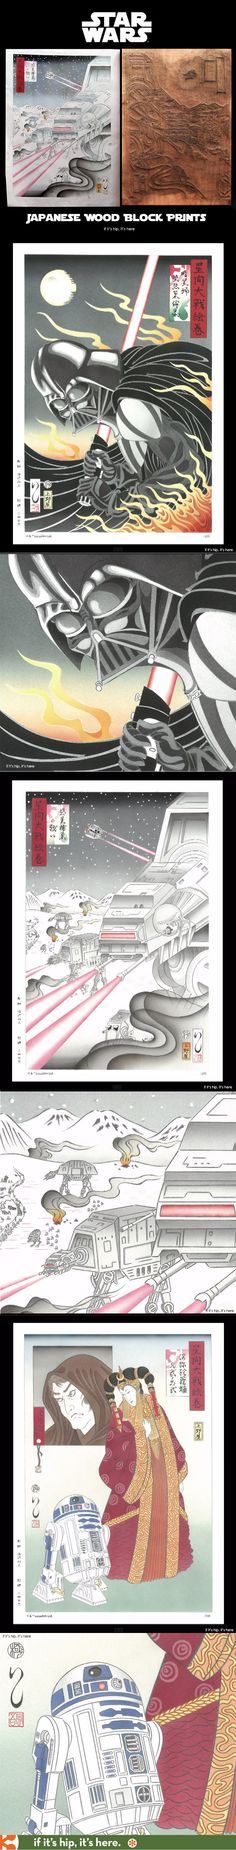 Lucasfilm and Run'a Release Stunning Star Wars Japanese Woodblock Prints - See more at: http://www.ifitshipitshere.com/star-wars-japanese-woodblock-prints/#sthash.OHTN1nOh.dpuf